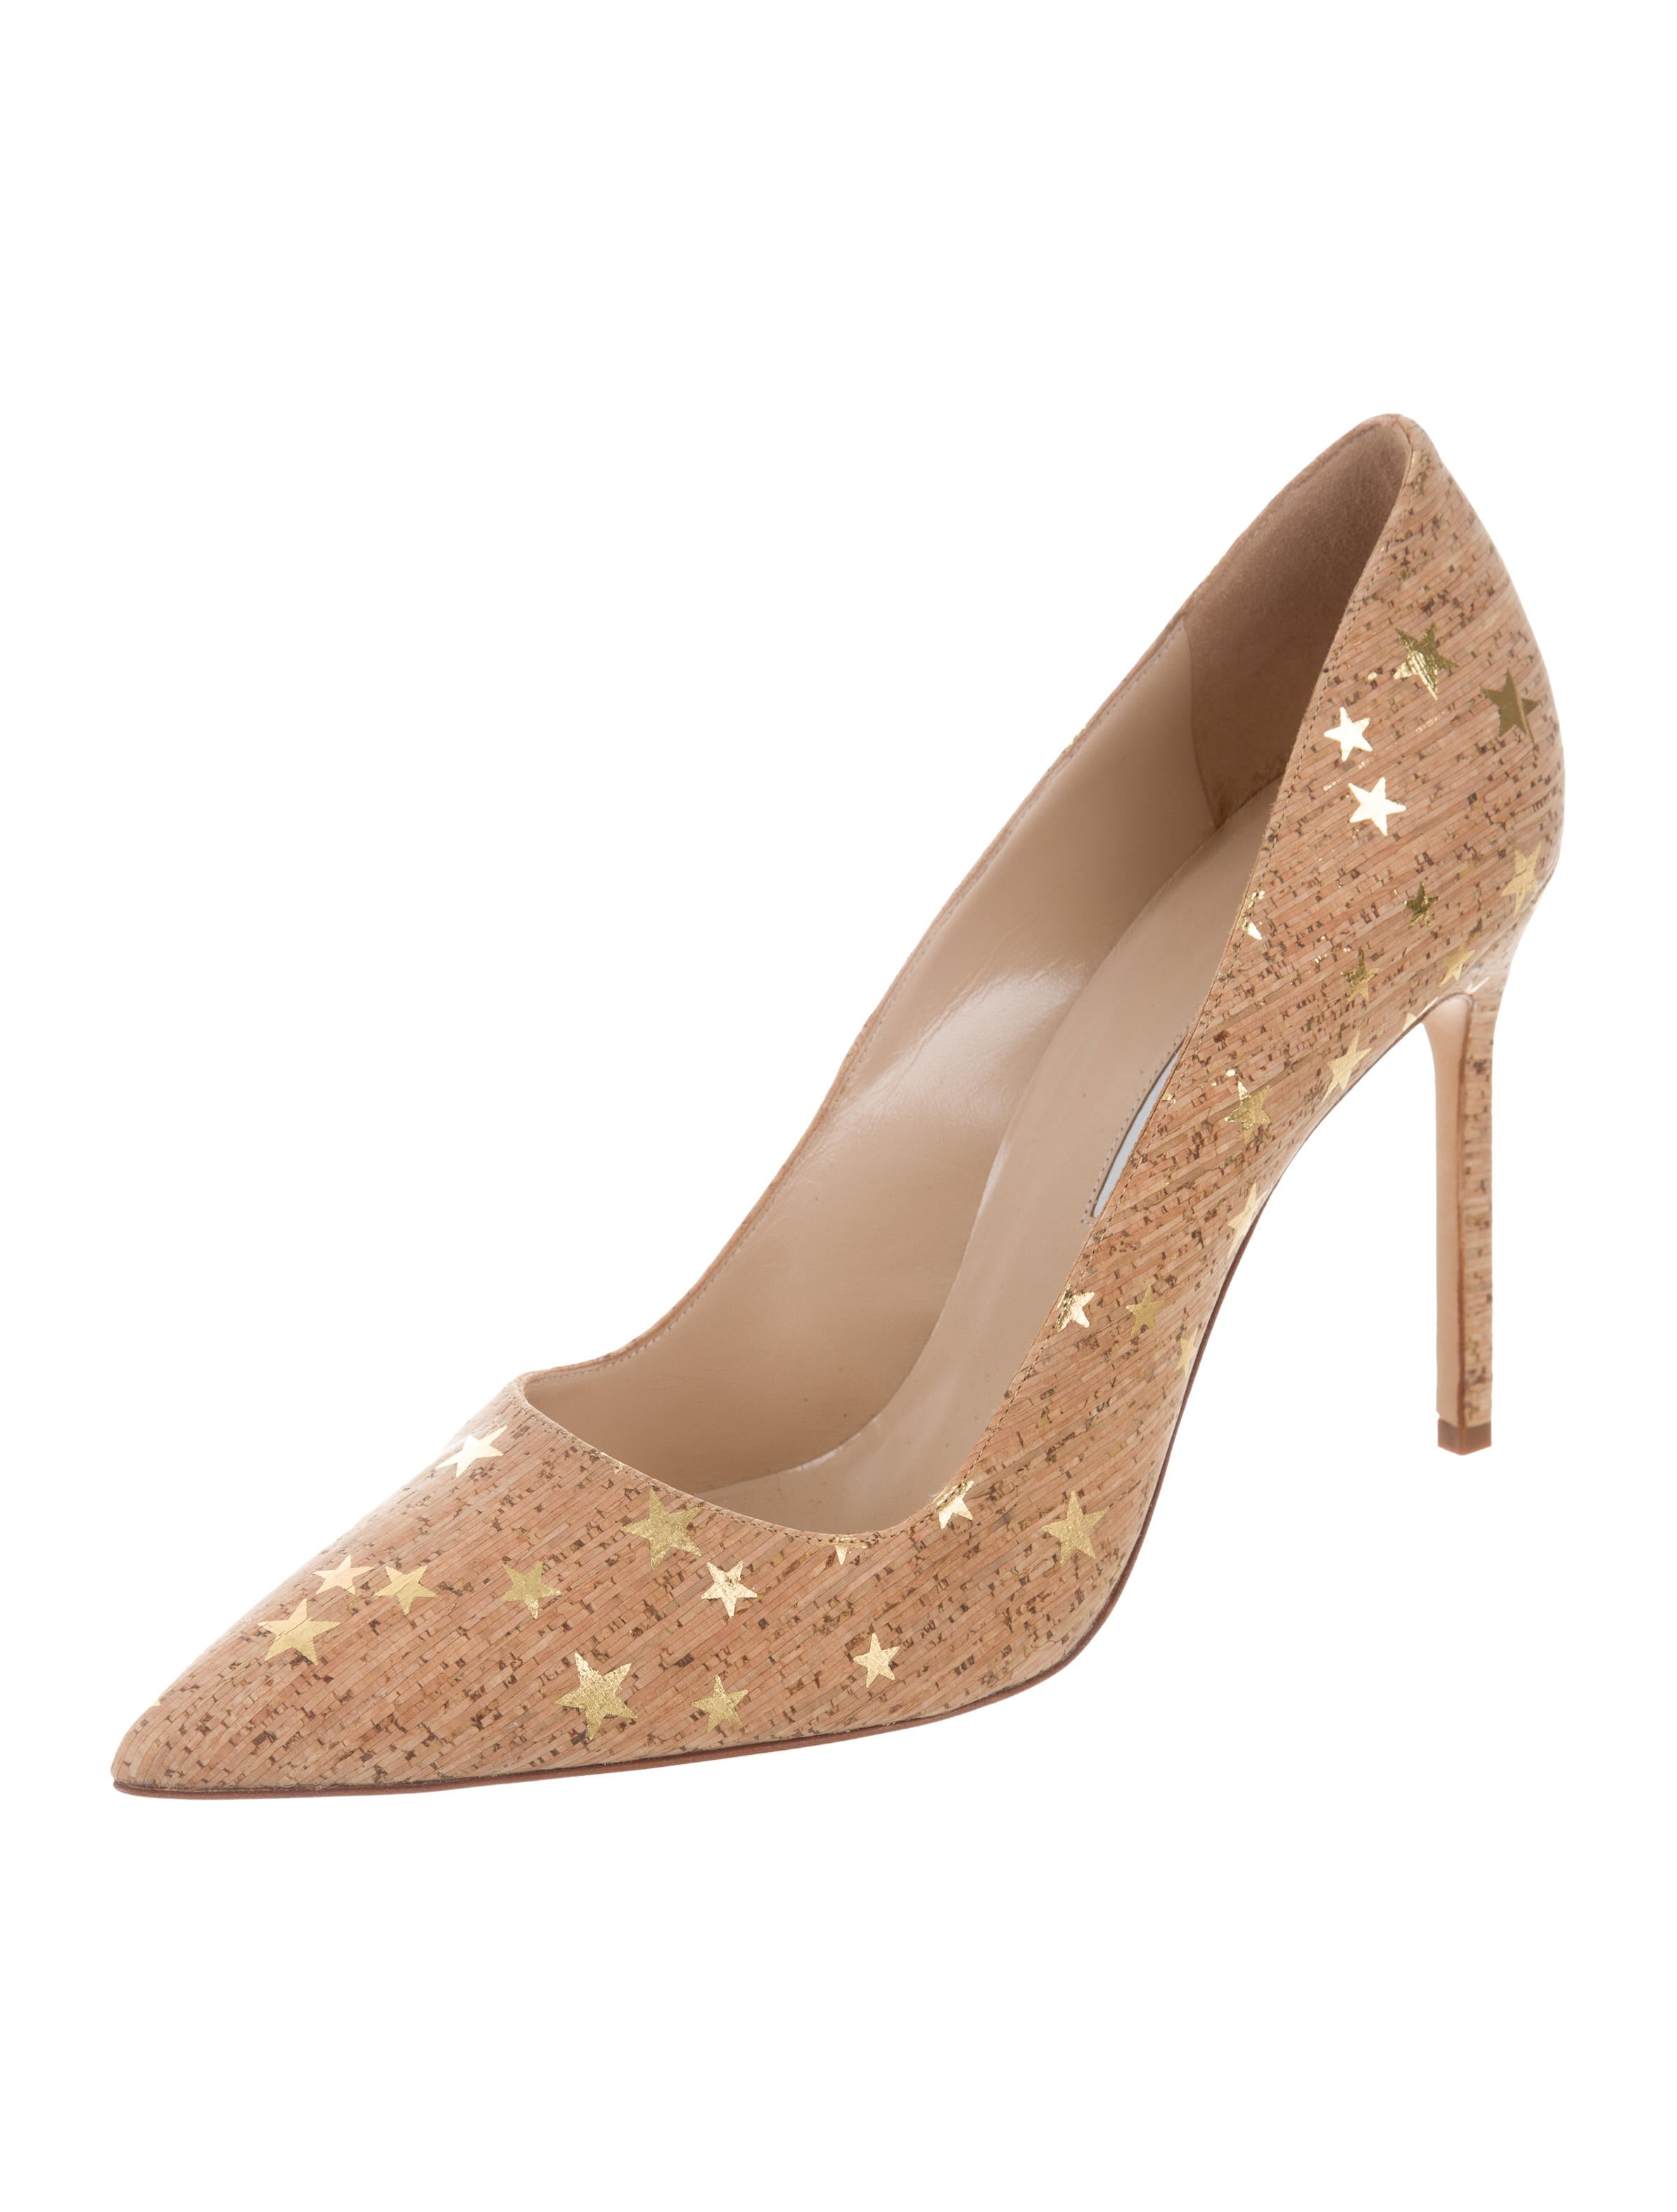 Manolo blahnik cork bb pumps shoes moo70561 the realreal for Shoes by manolo blahnik